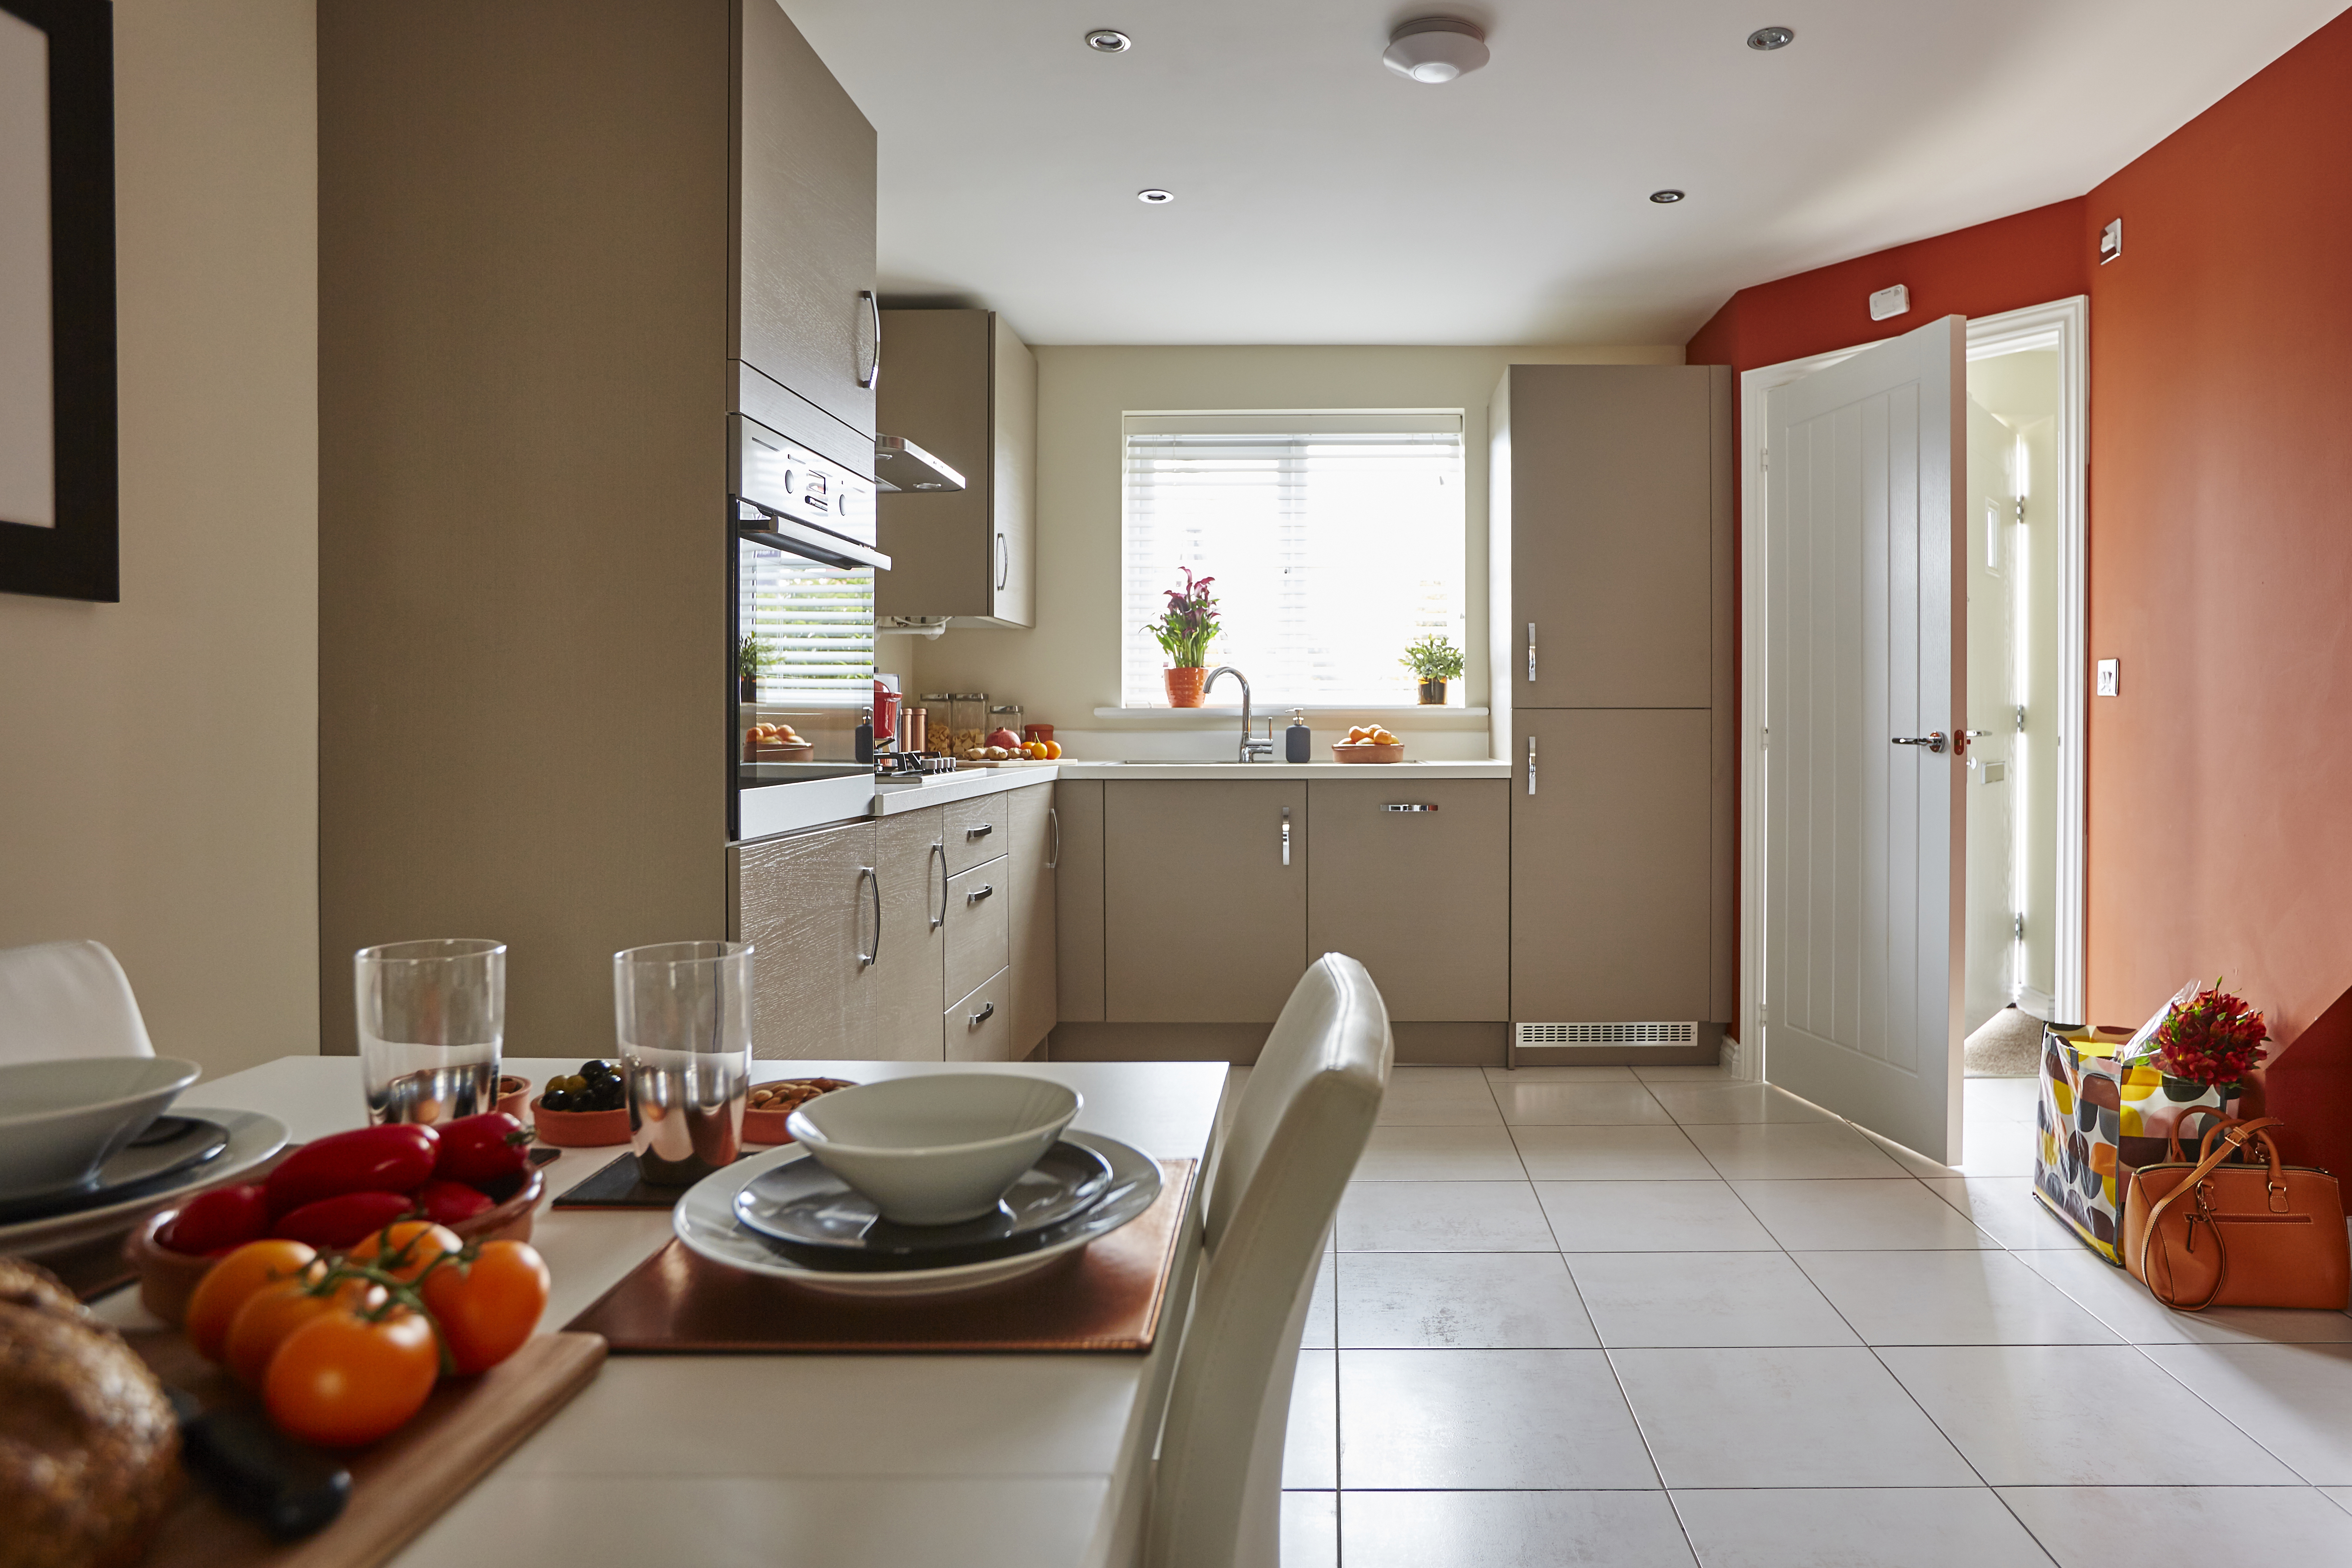 TW NWest_Spring Croft_Winsford_PB35_Alton_Kitchen